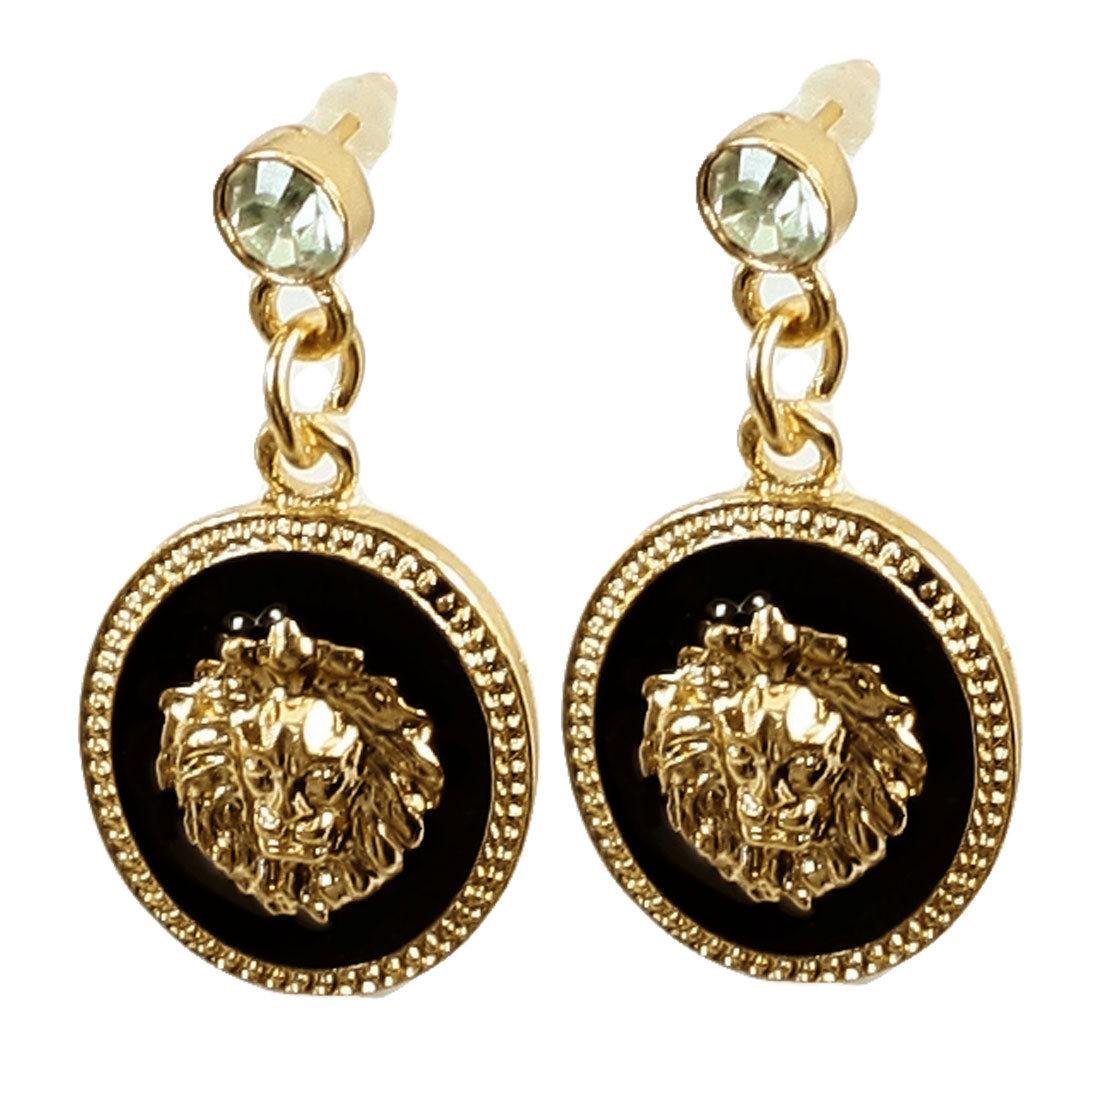 Lady Rhinestone Inlaid Ear Stud Black Gold Tone Dangling Earrings Pair